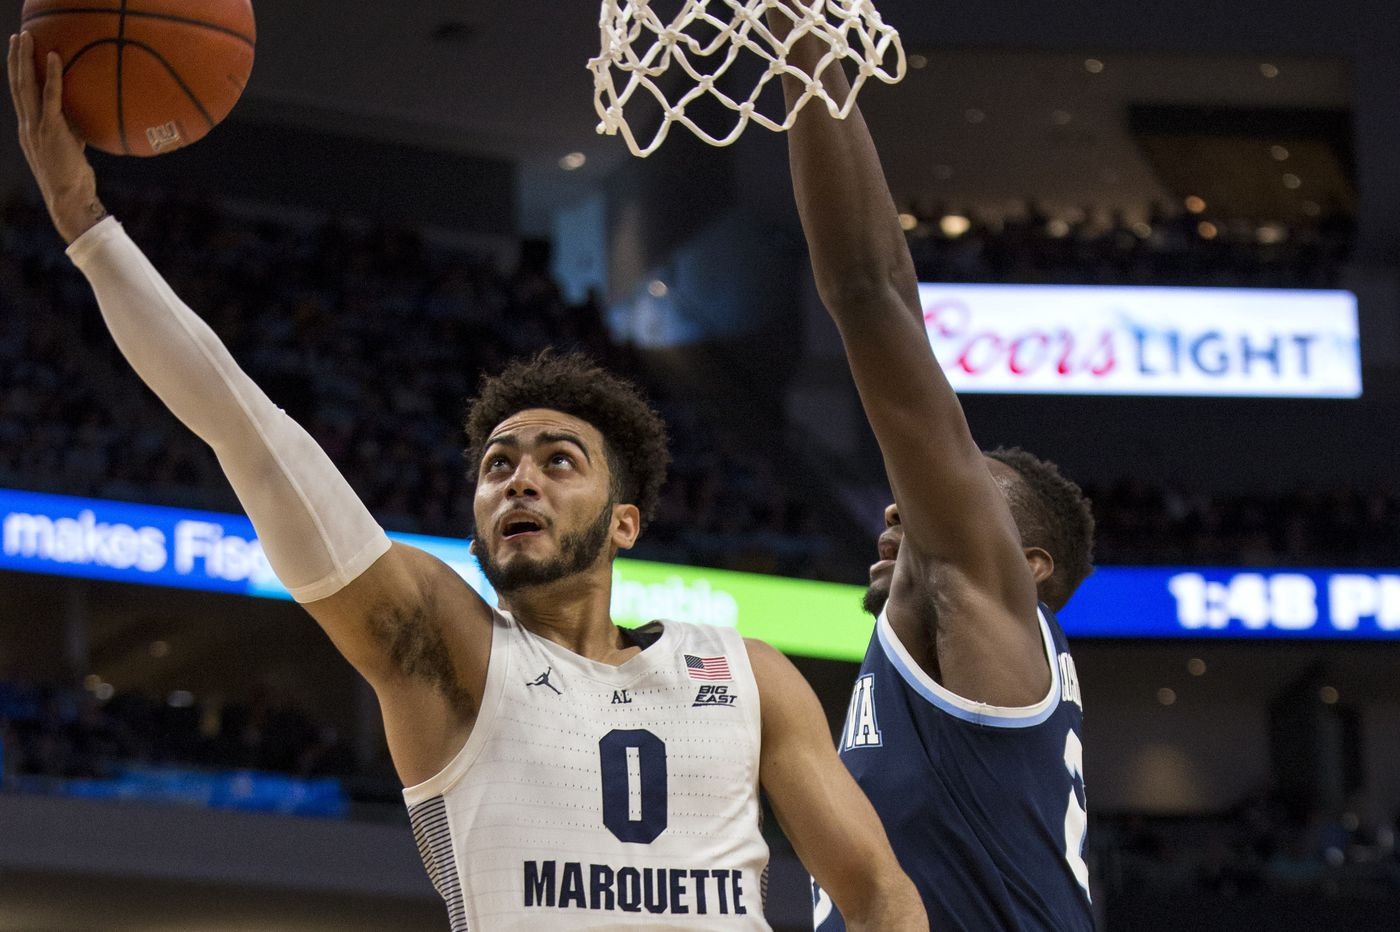 Villanova rallies from 15-point deficit, but final shot falls short in 66-65 loss to Marquette